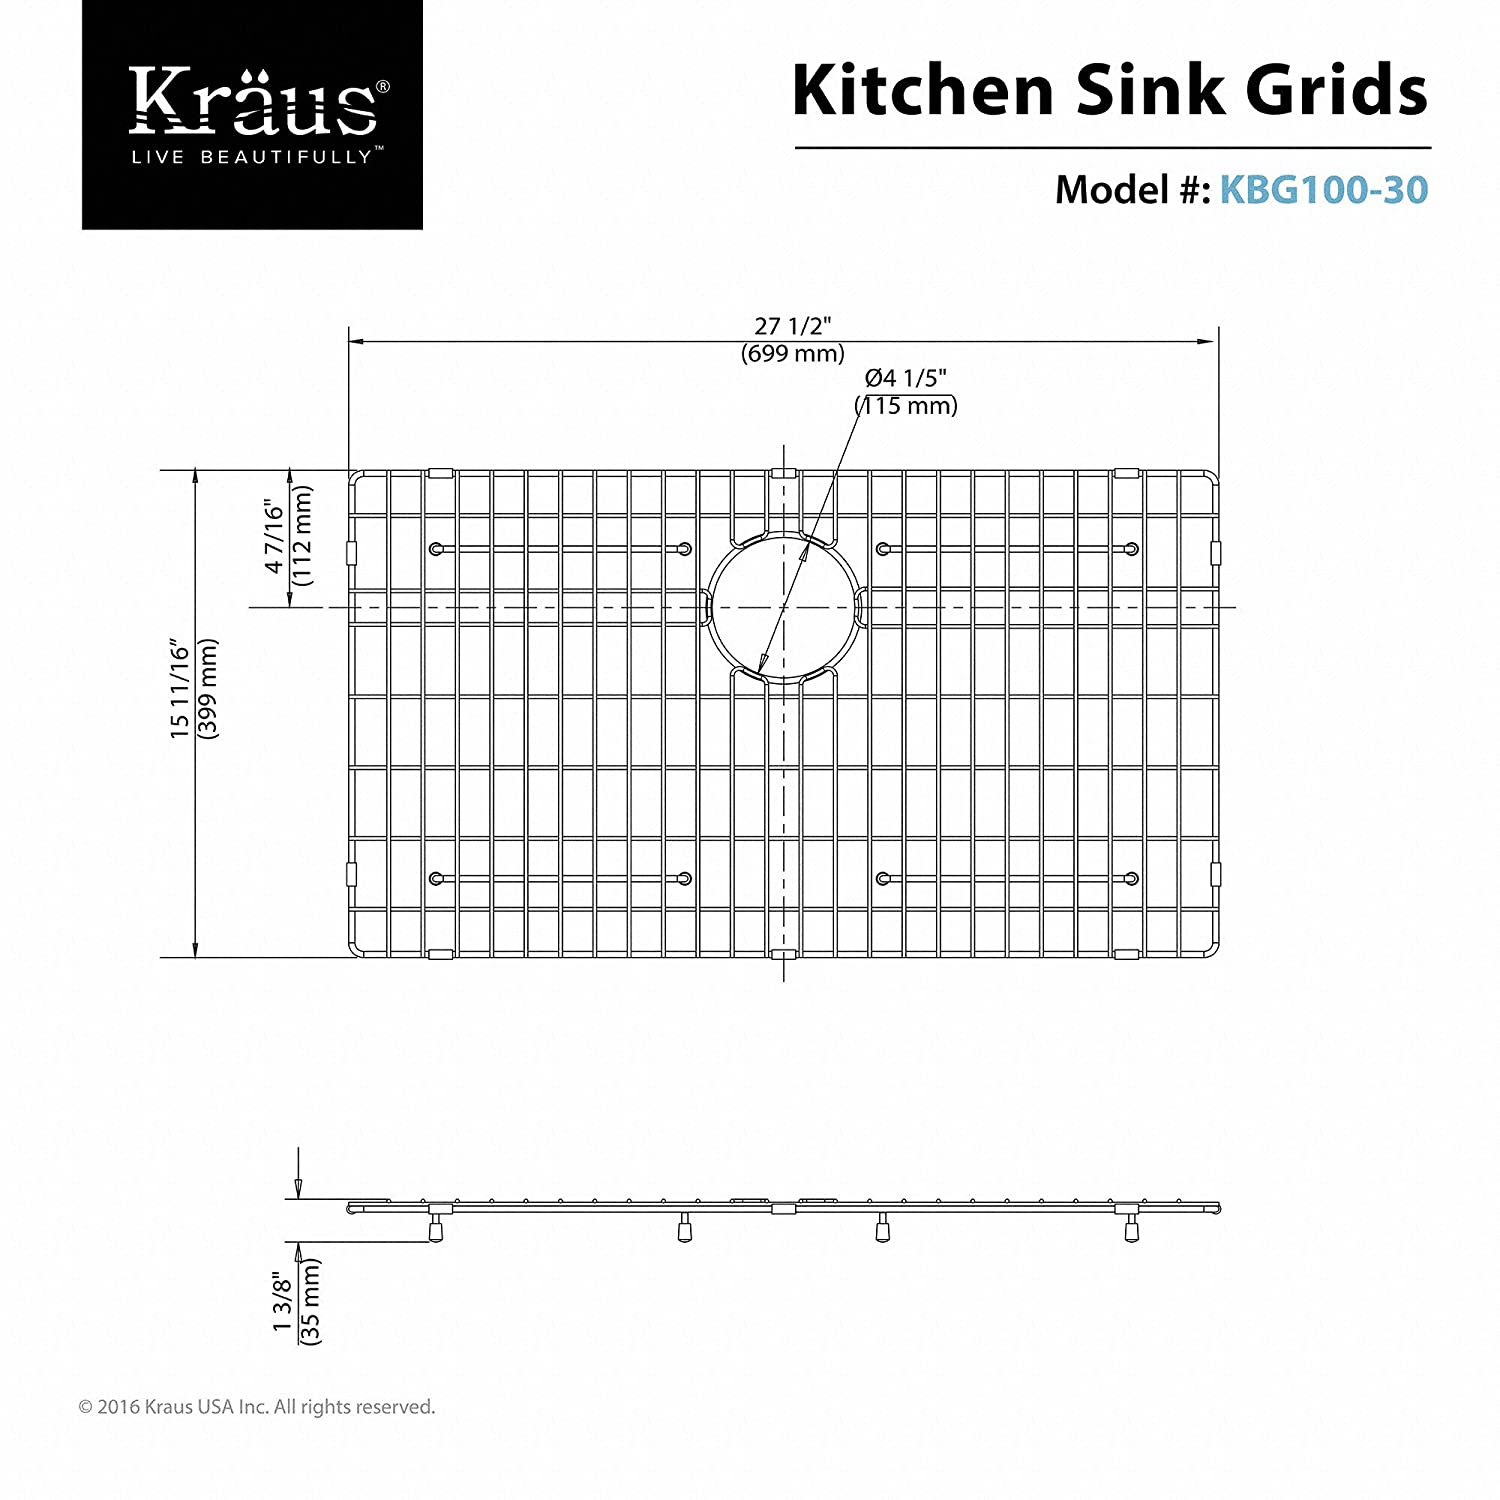 Kraus Kbg 100 30 Stainless Steel Bottom Grid For Khu100 Single One Line Wiring Diagram Kitchen Bowl Sink 27 X 15 11 16 1 3 8 Sinks